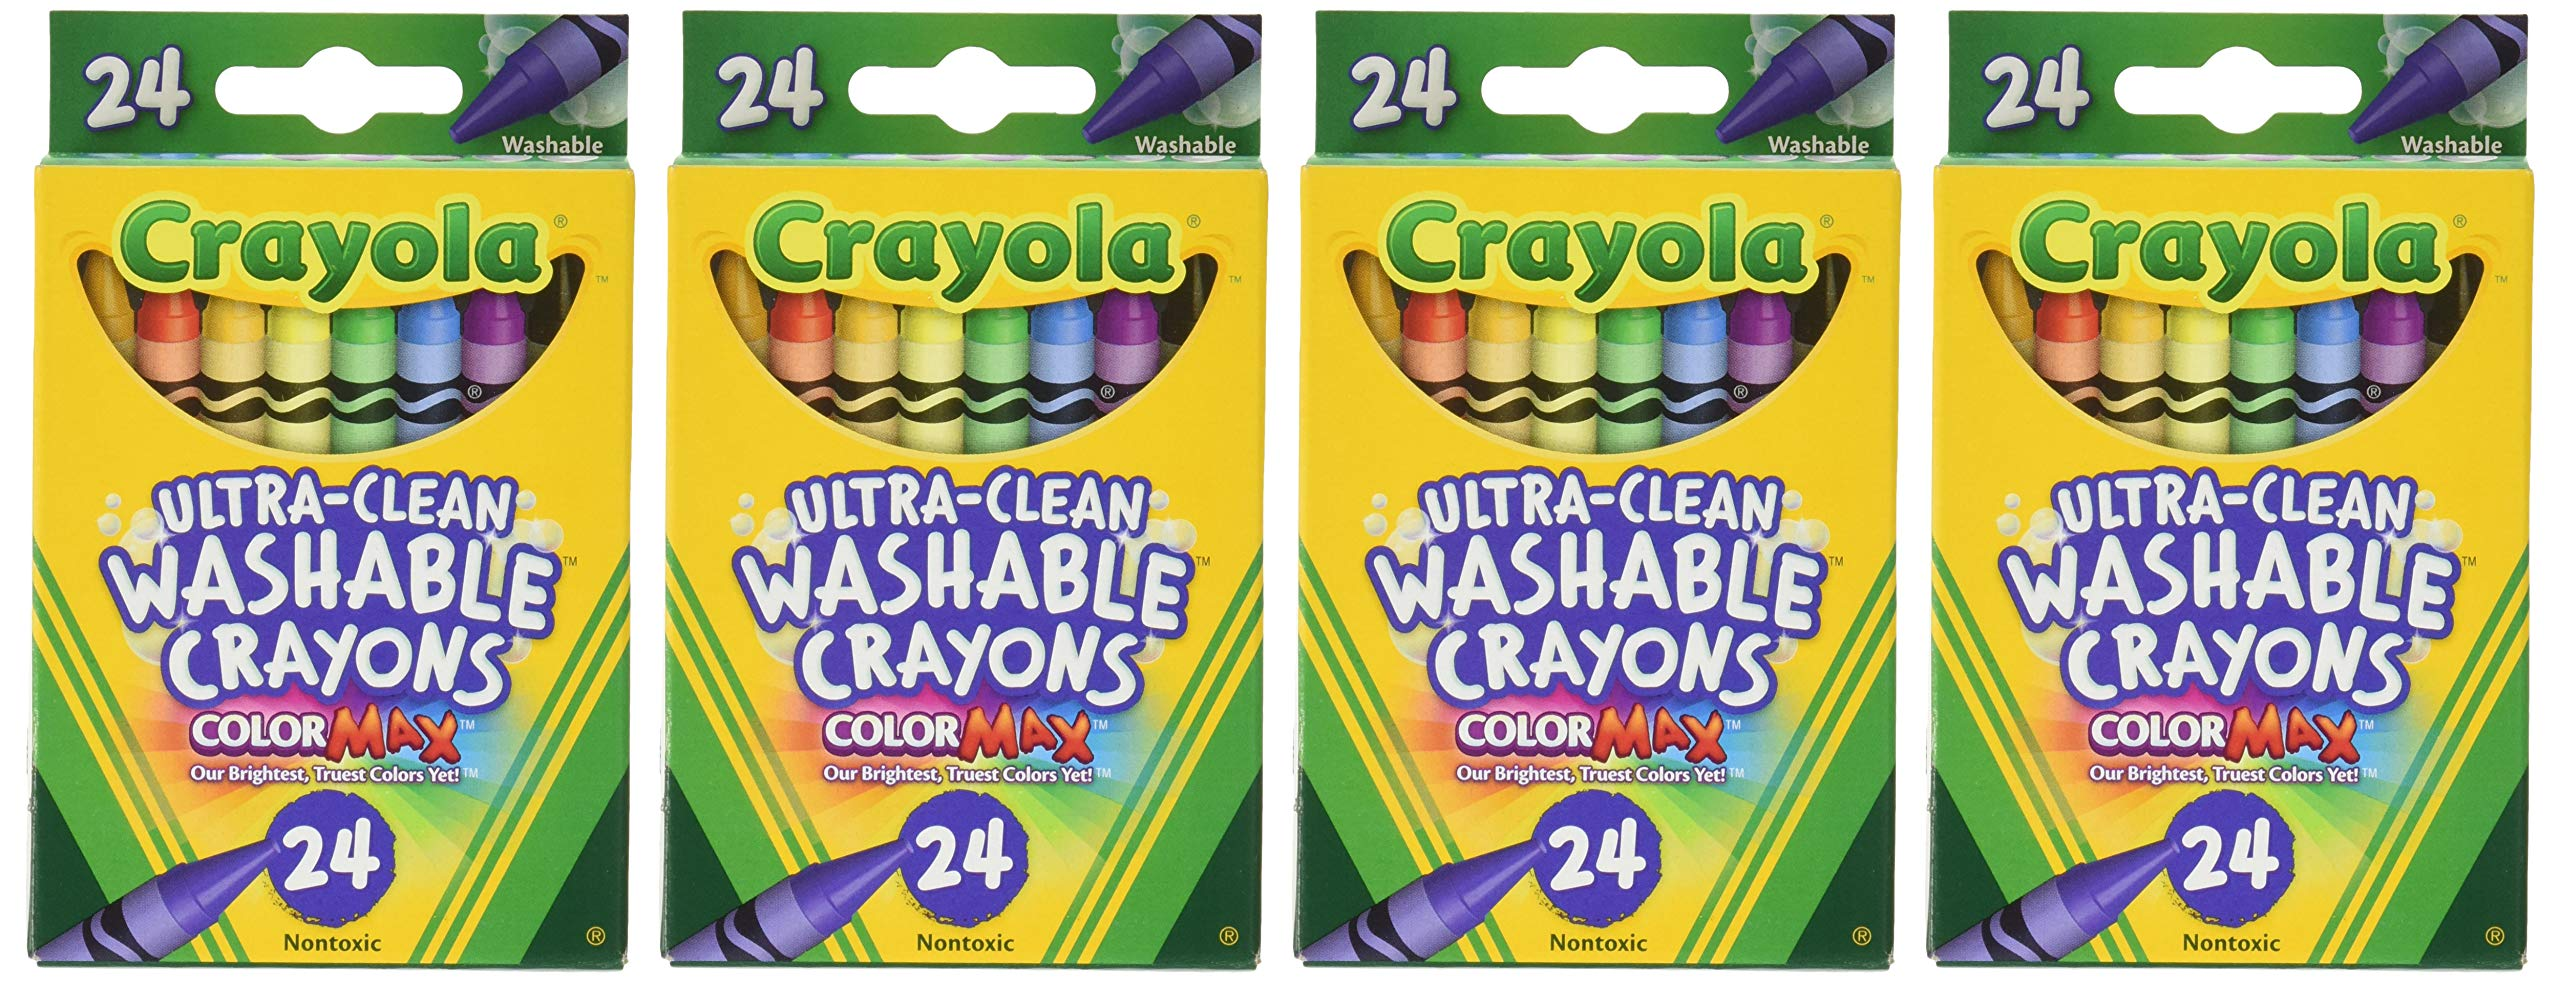 Crayola Washable Crayons, 24 Count (Pack of 4) Total 96 Crayons by Crayola